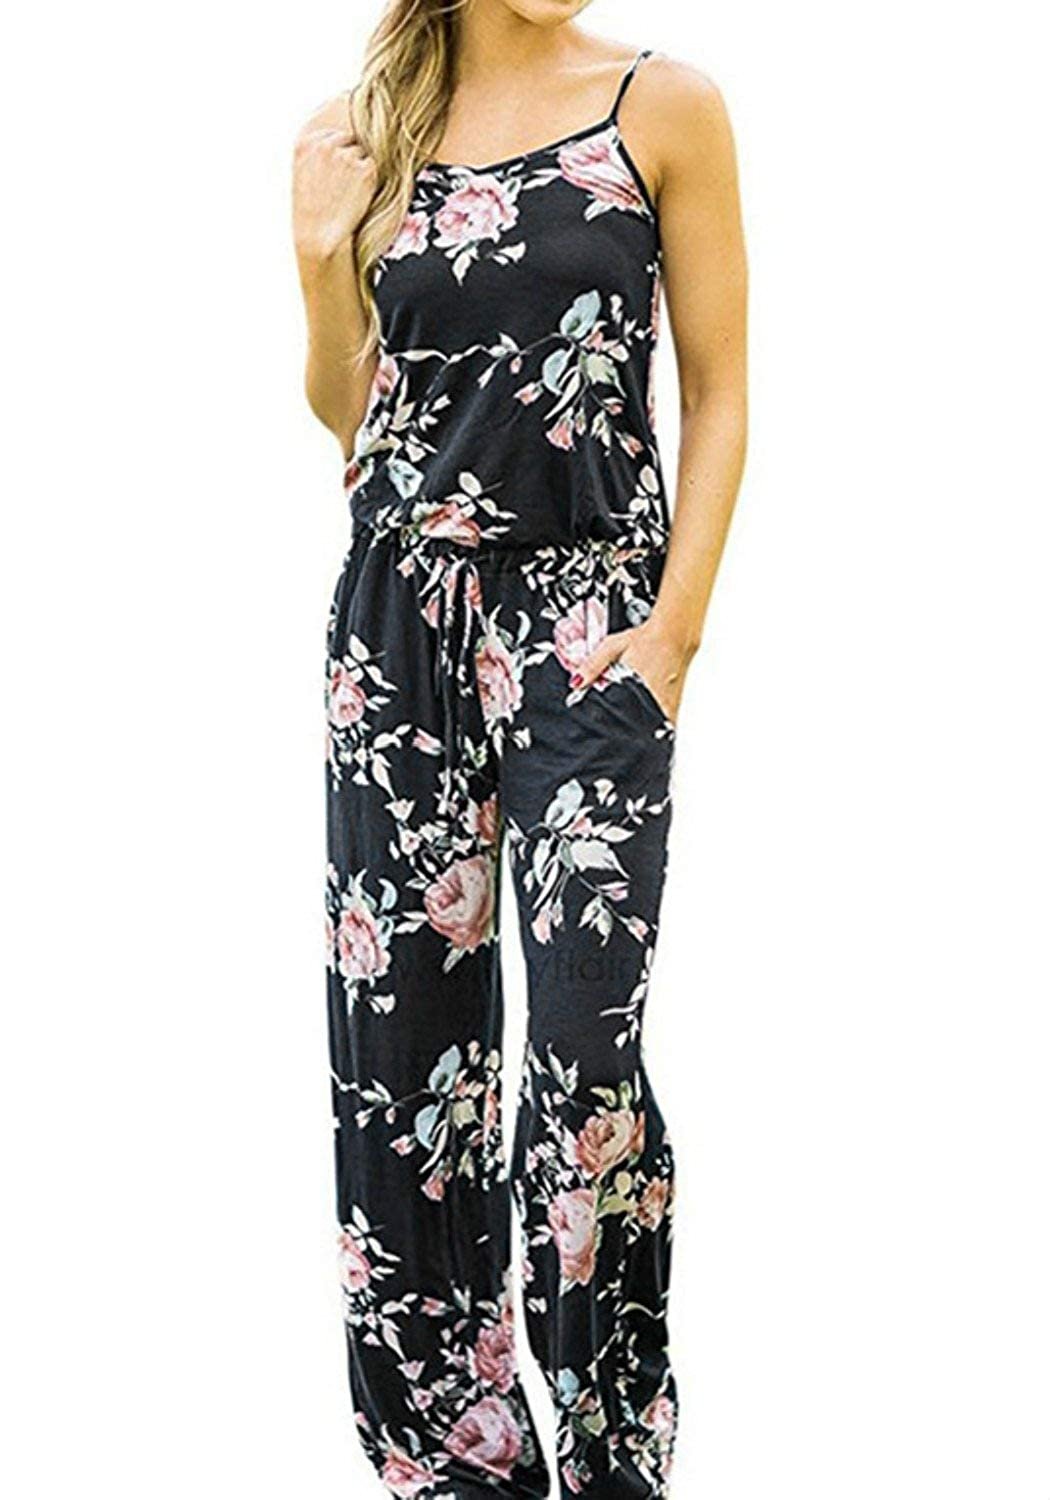 fd99269b3279 Amazon.com: AMiERY Women's Floral Printed Jumpsuits Solid Rompers Casual  Comfy Striped Jumpsuit with Pockets: Clothing